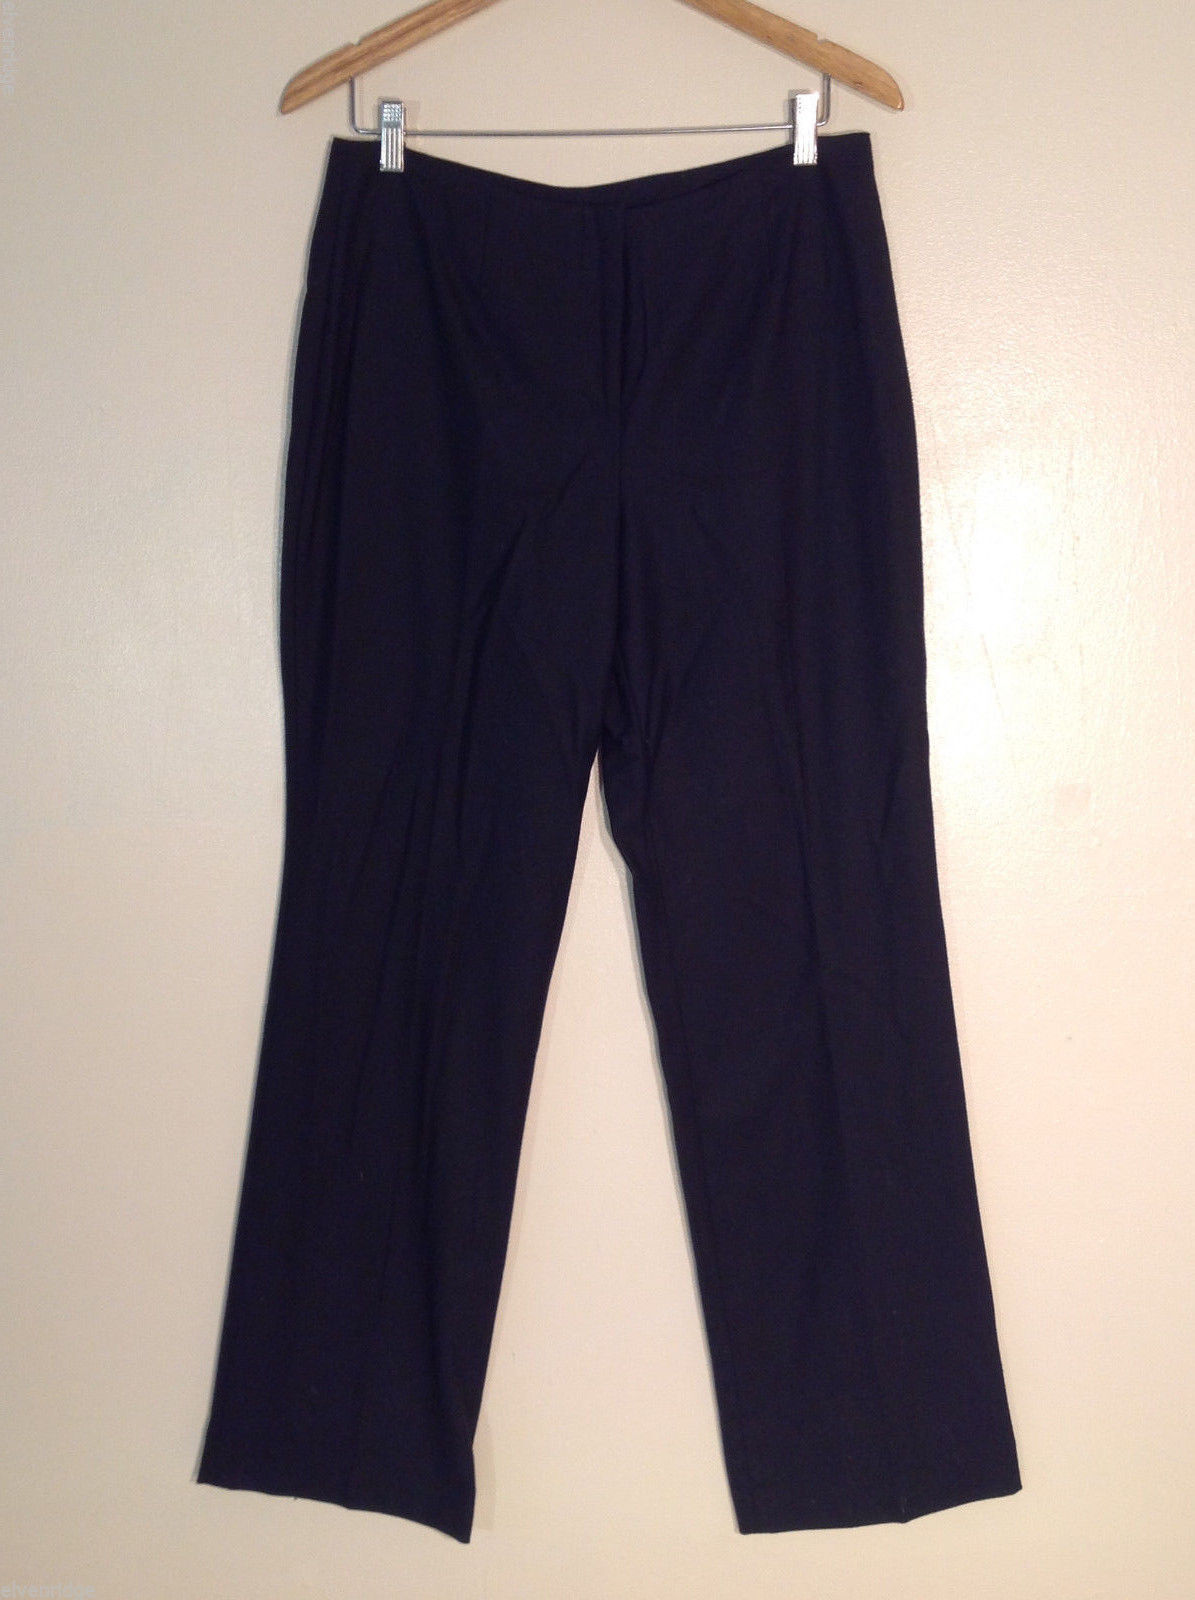 Lands' End Women's Tall Size 10 Dress Pants Black Wool Straight Leg No Waistband